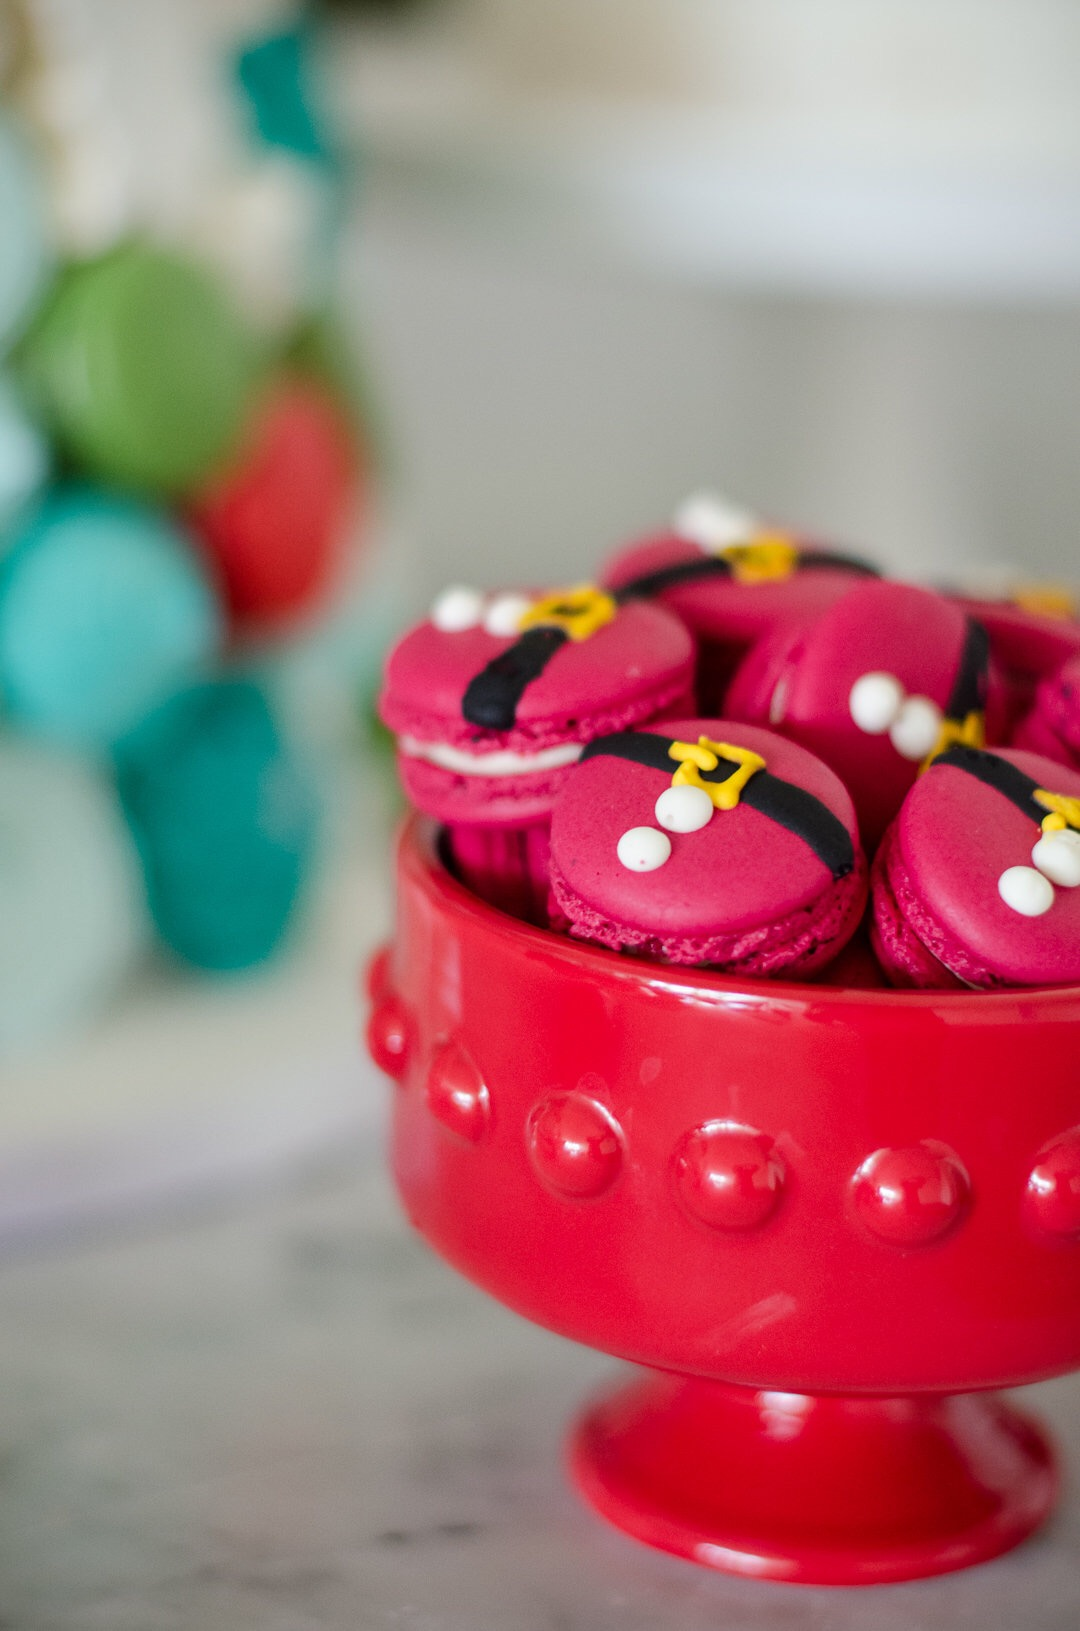 These Santa macarons are just so cute served in a pretty red footed bowl. See more holiday party inspiration from Austin based party stylist Mint Event Design at www.minteventdesign.com #desserttable #christmasdesserts #holidayparty #holidays #partyideas #christmasparty #holidaypartyideas #macarons